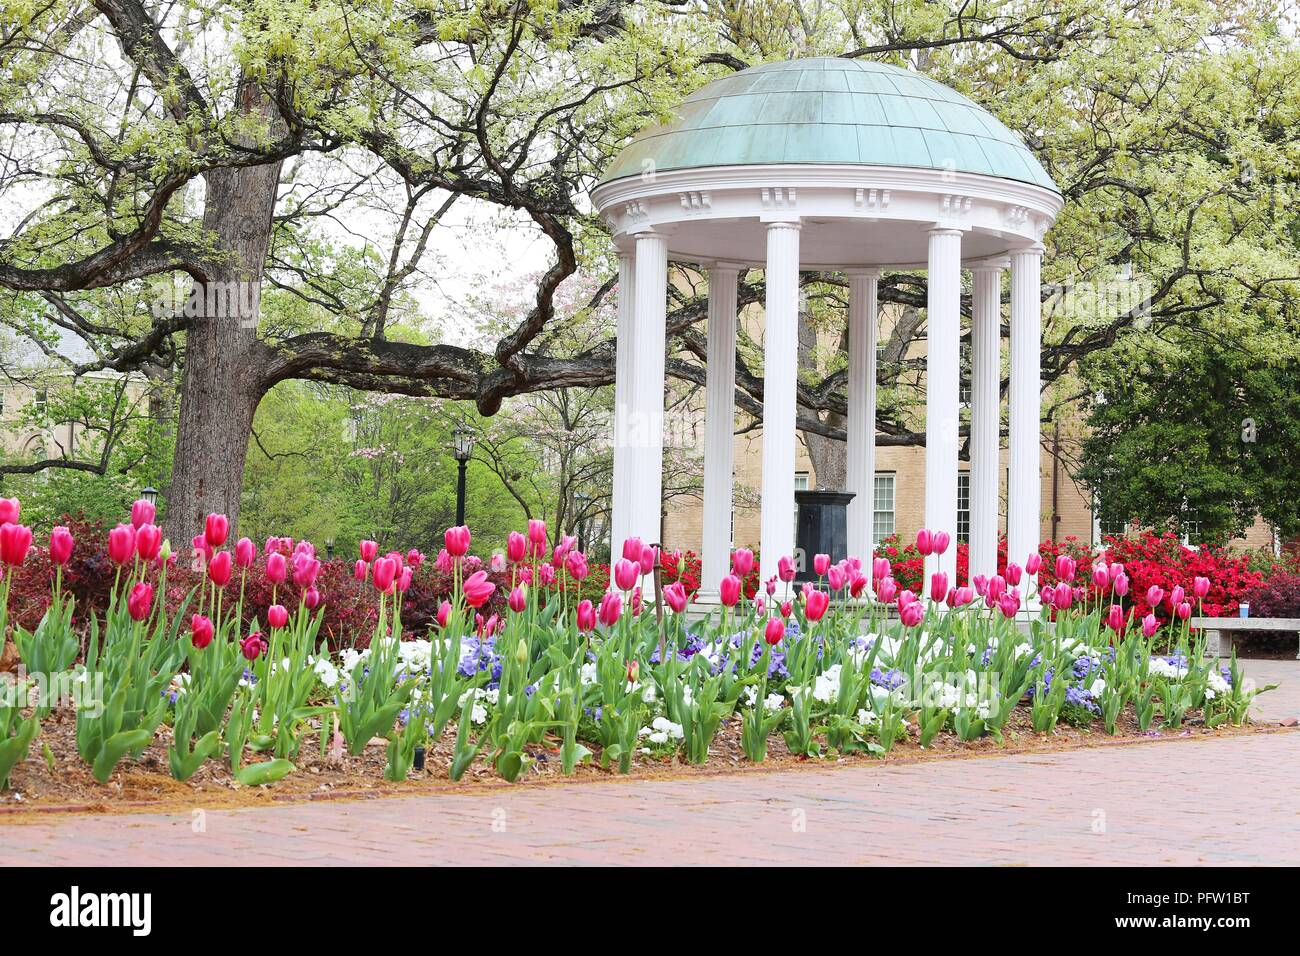 The old well, Historical landmark in Chapel Hill, North Carolina - Stock Image